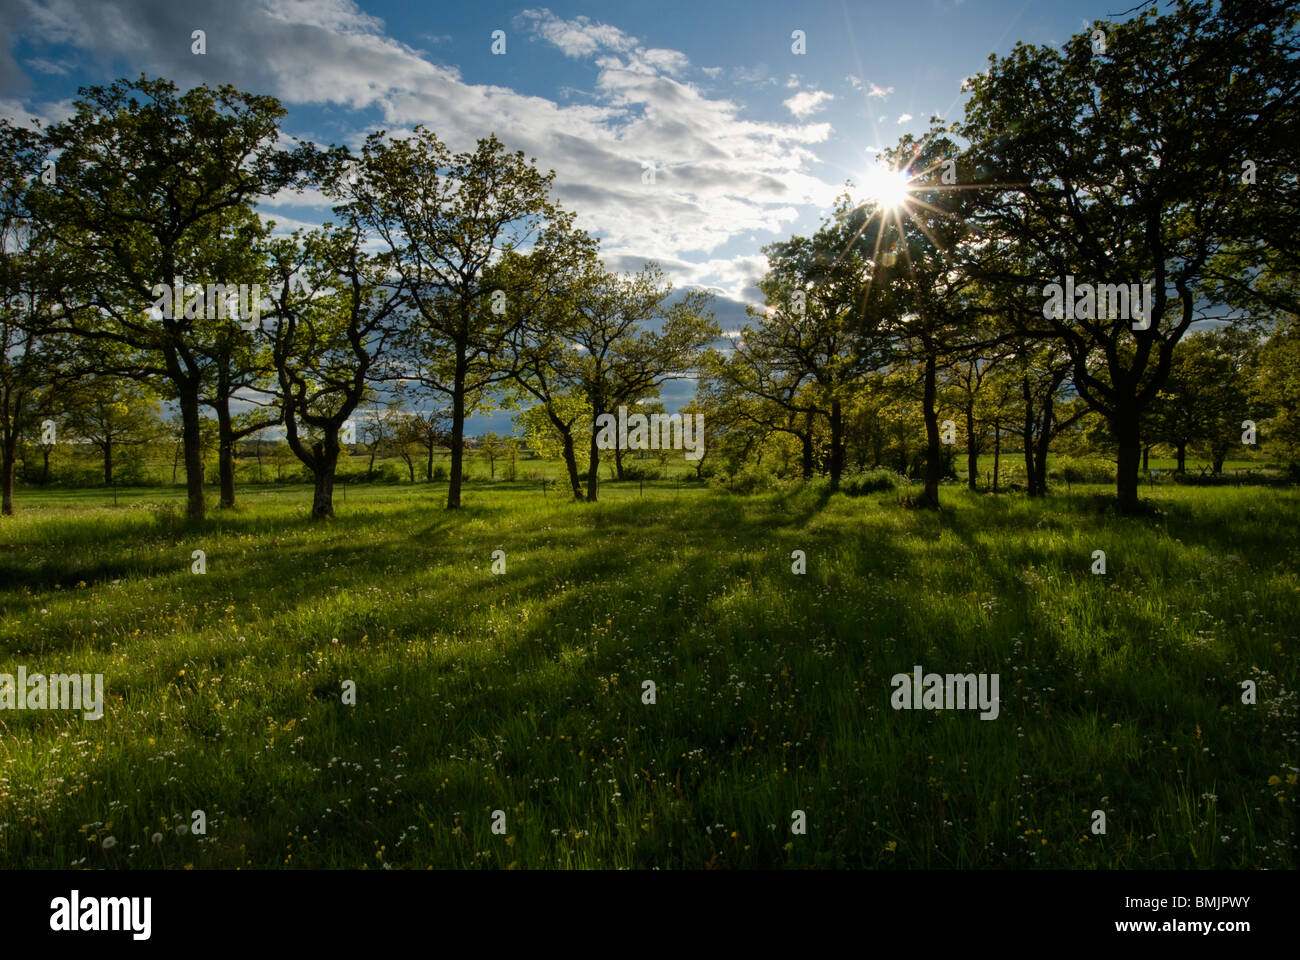 Scandinavia, Sweden, Oland, View of oak trees in landscape - Stock Image